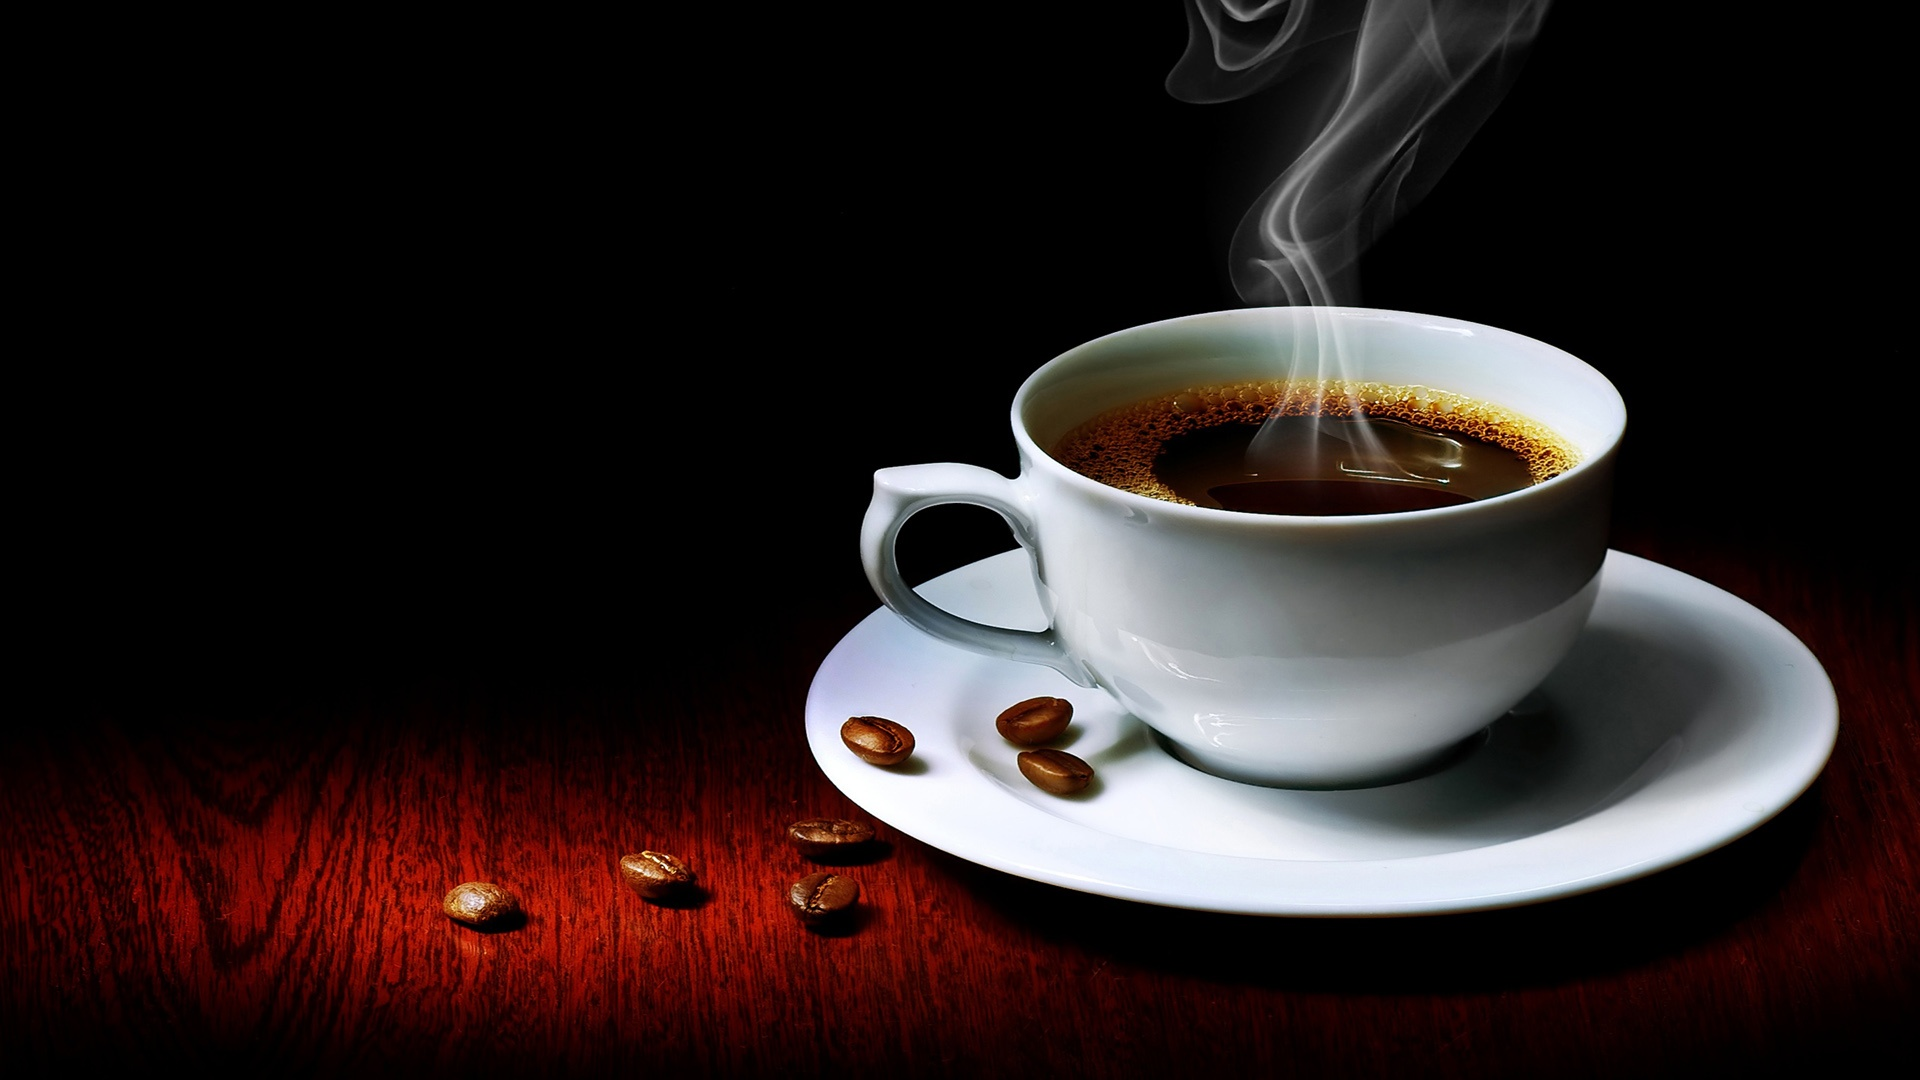 Hot Coffee Wallpaper